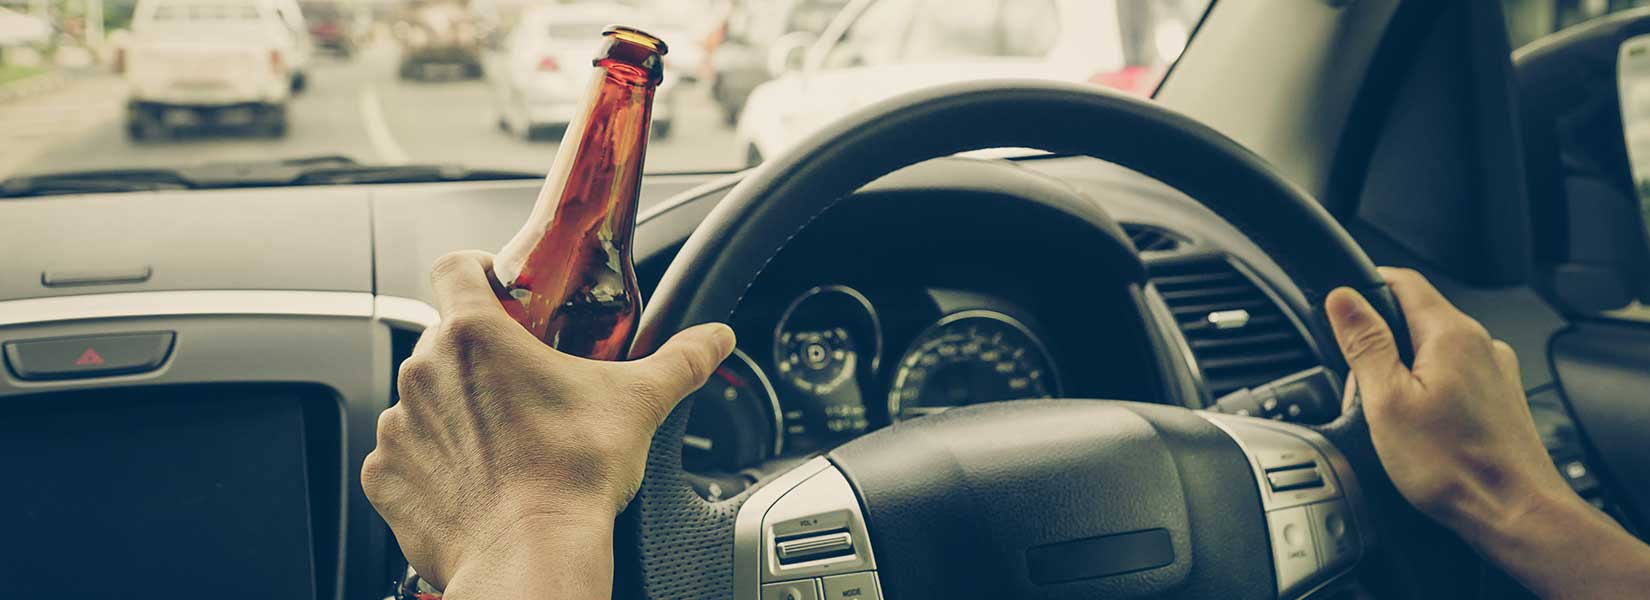 What if the Other Driver Got a DUI? | Accident Lawyer Baton Rouge